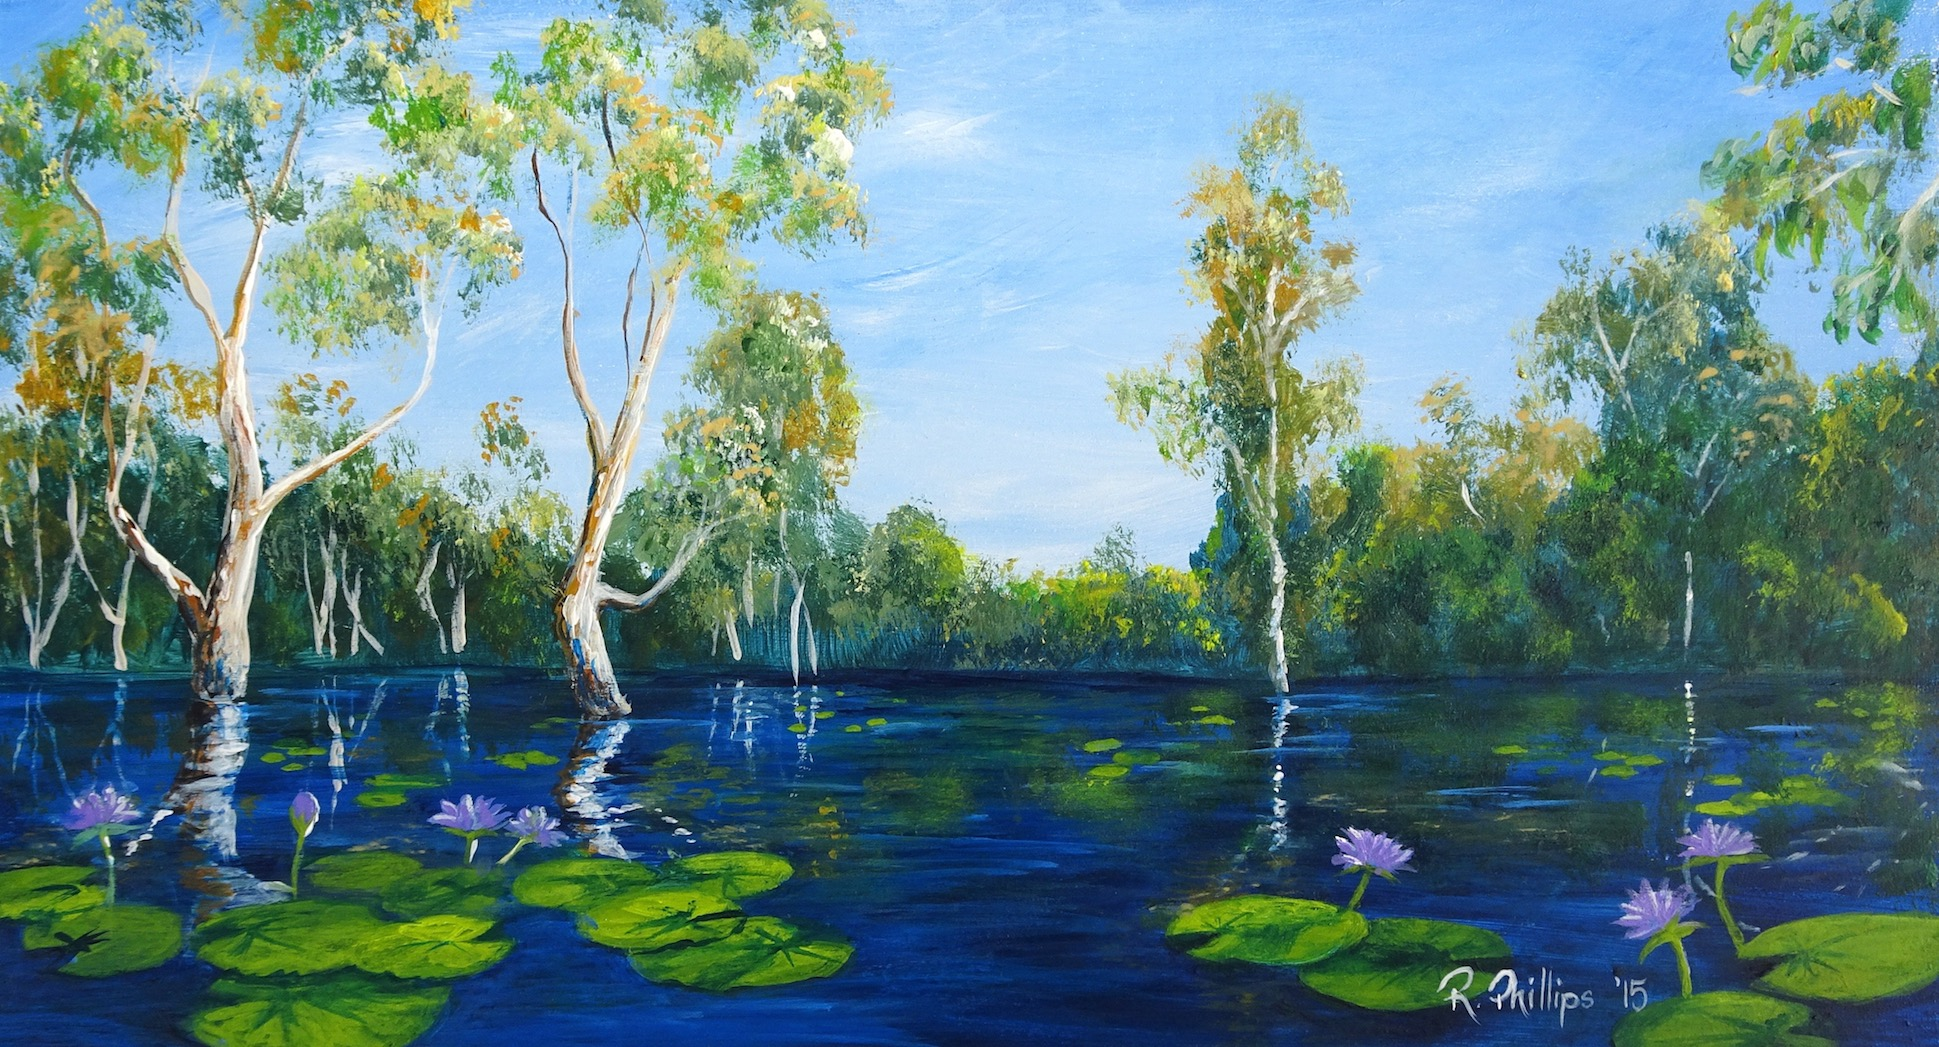 Miniature Landscape painting of the Yellow Water Billabong